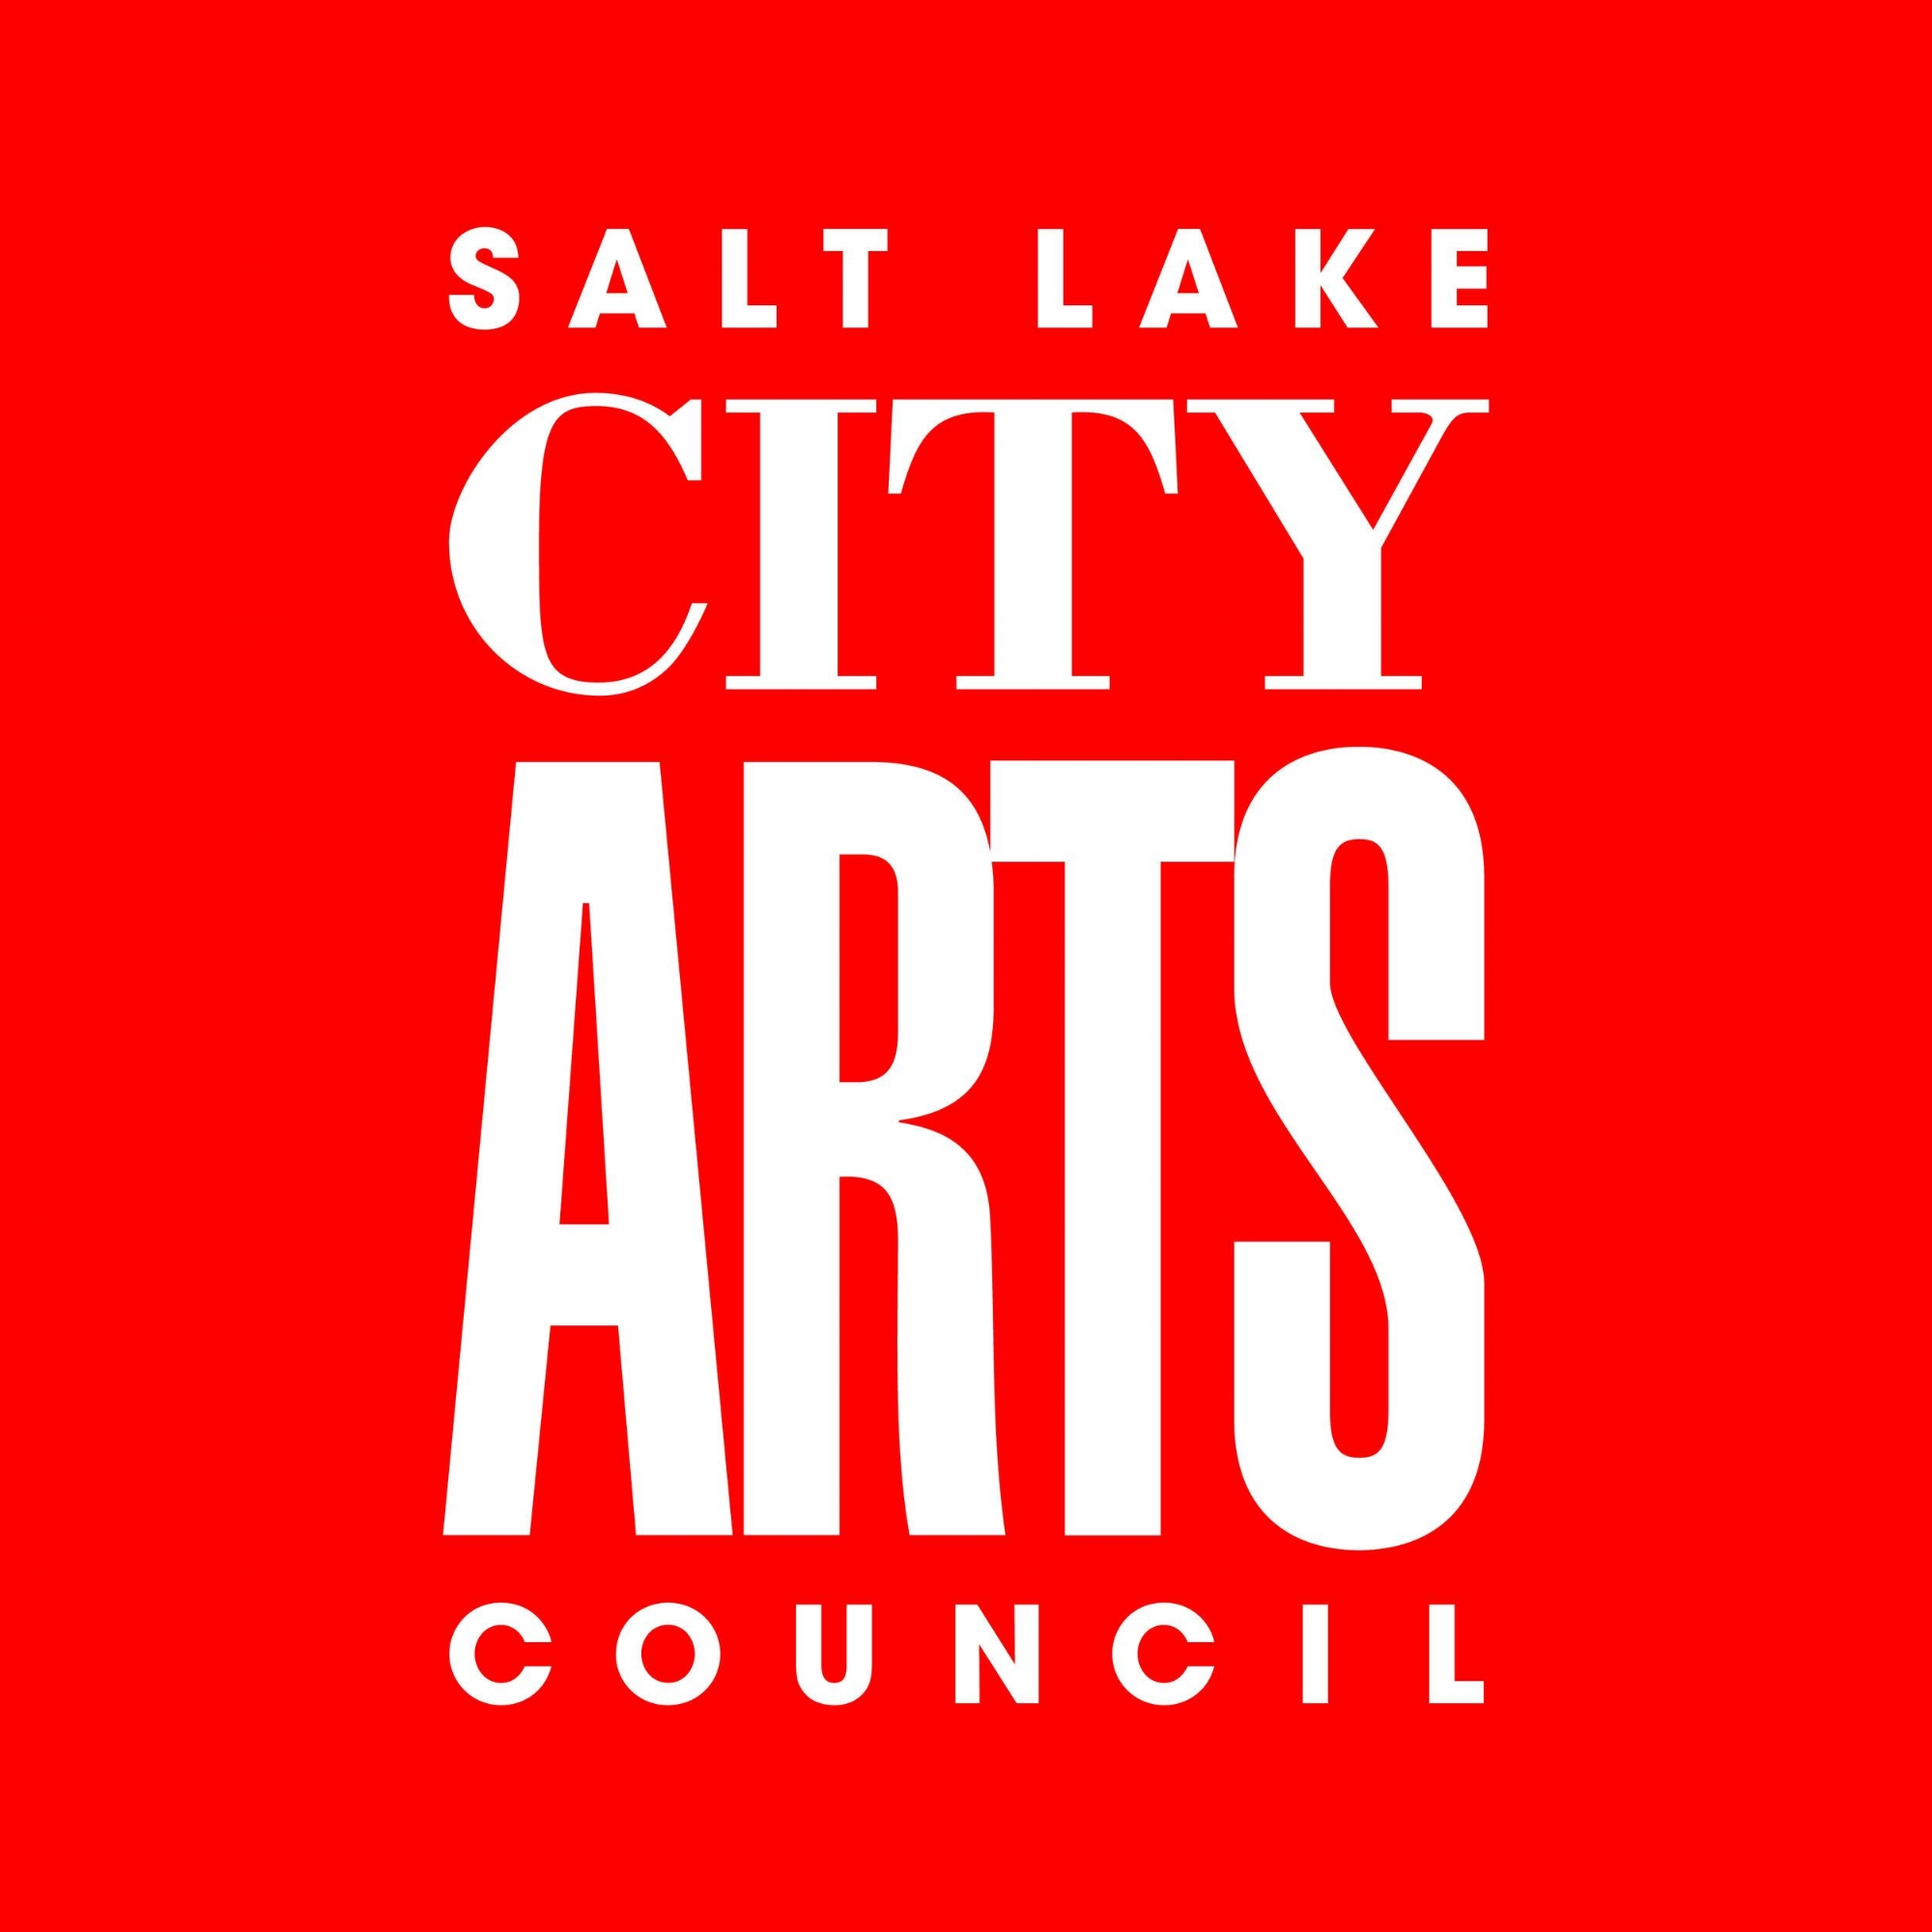 We are proud to have the SLC Arts Council as a sponsor for these classes!